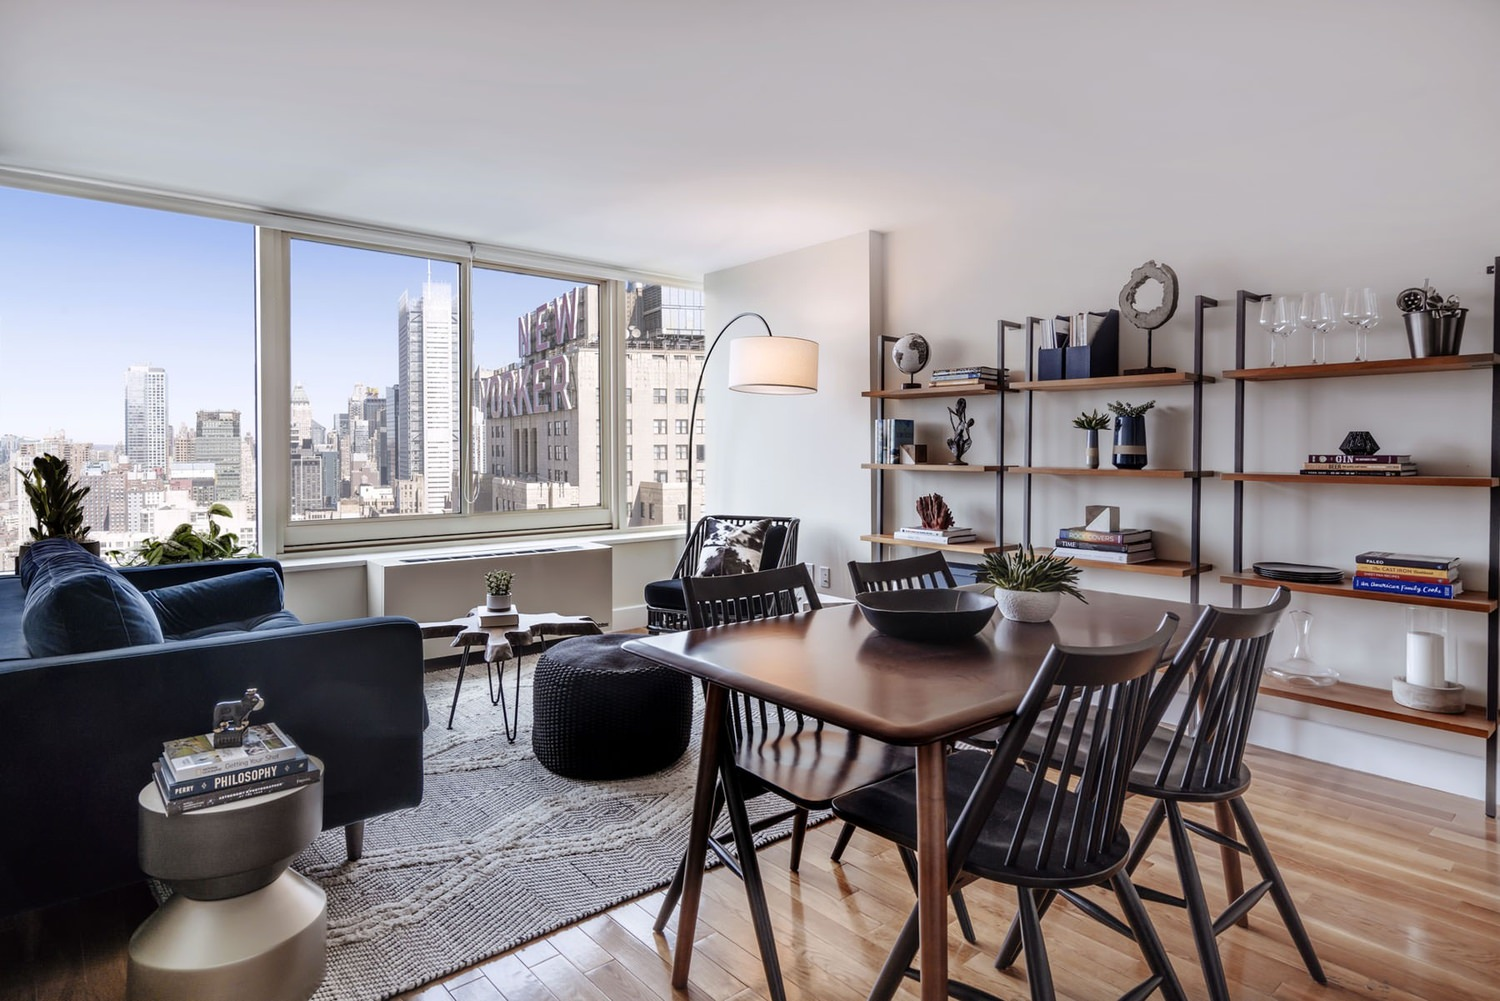 Dining and living room area of an apartment that has a view of the city skyline.